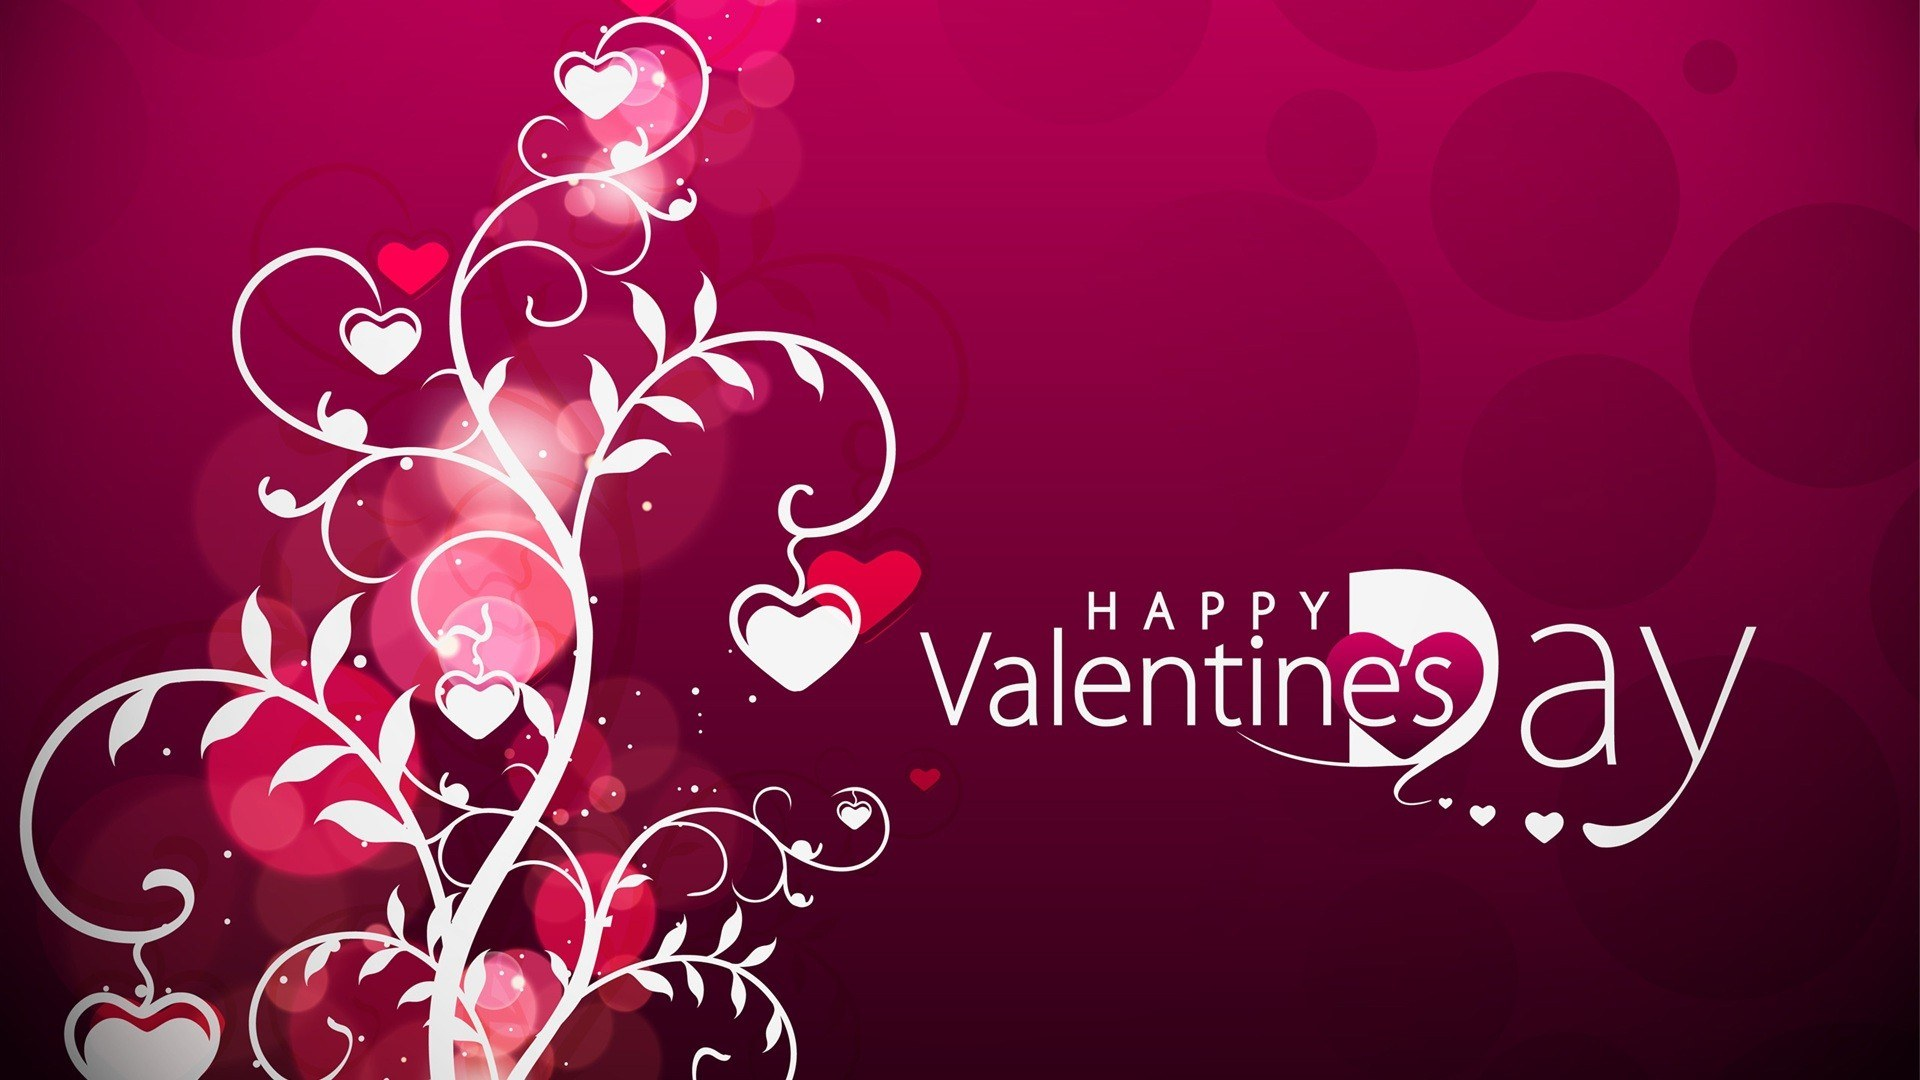 Happy-Valentines-Day-Wallpaper